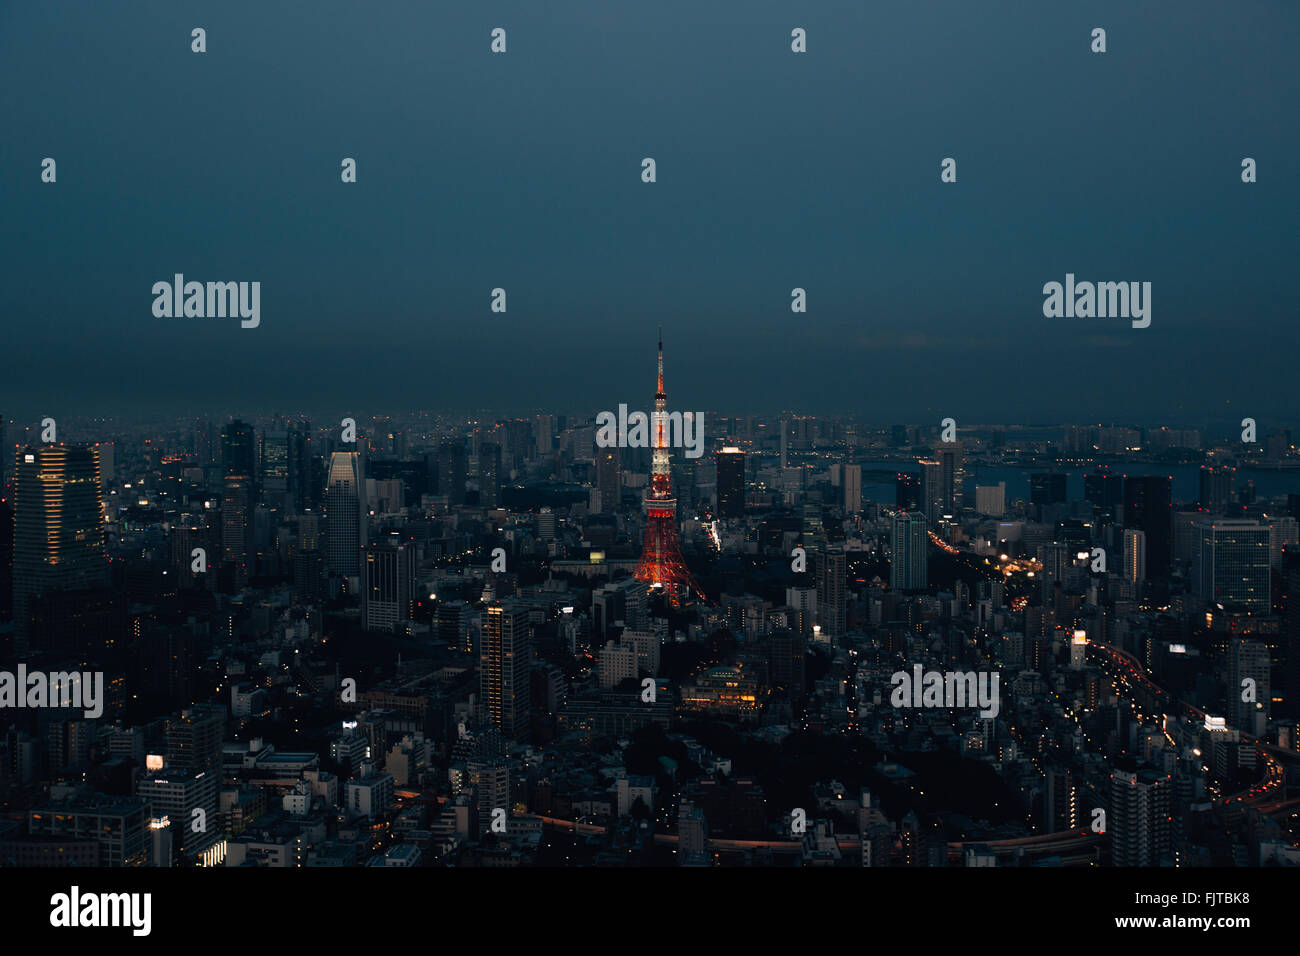 Illuminated Tokyo Tower In City Against Clear Sky - Stock Image